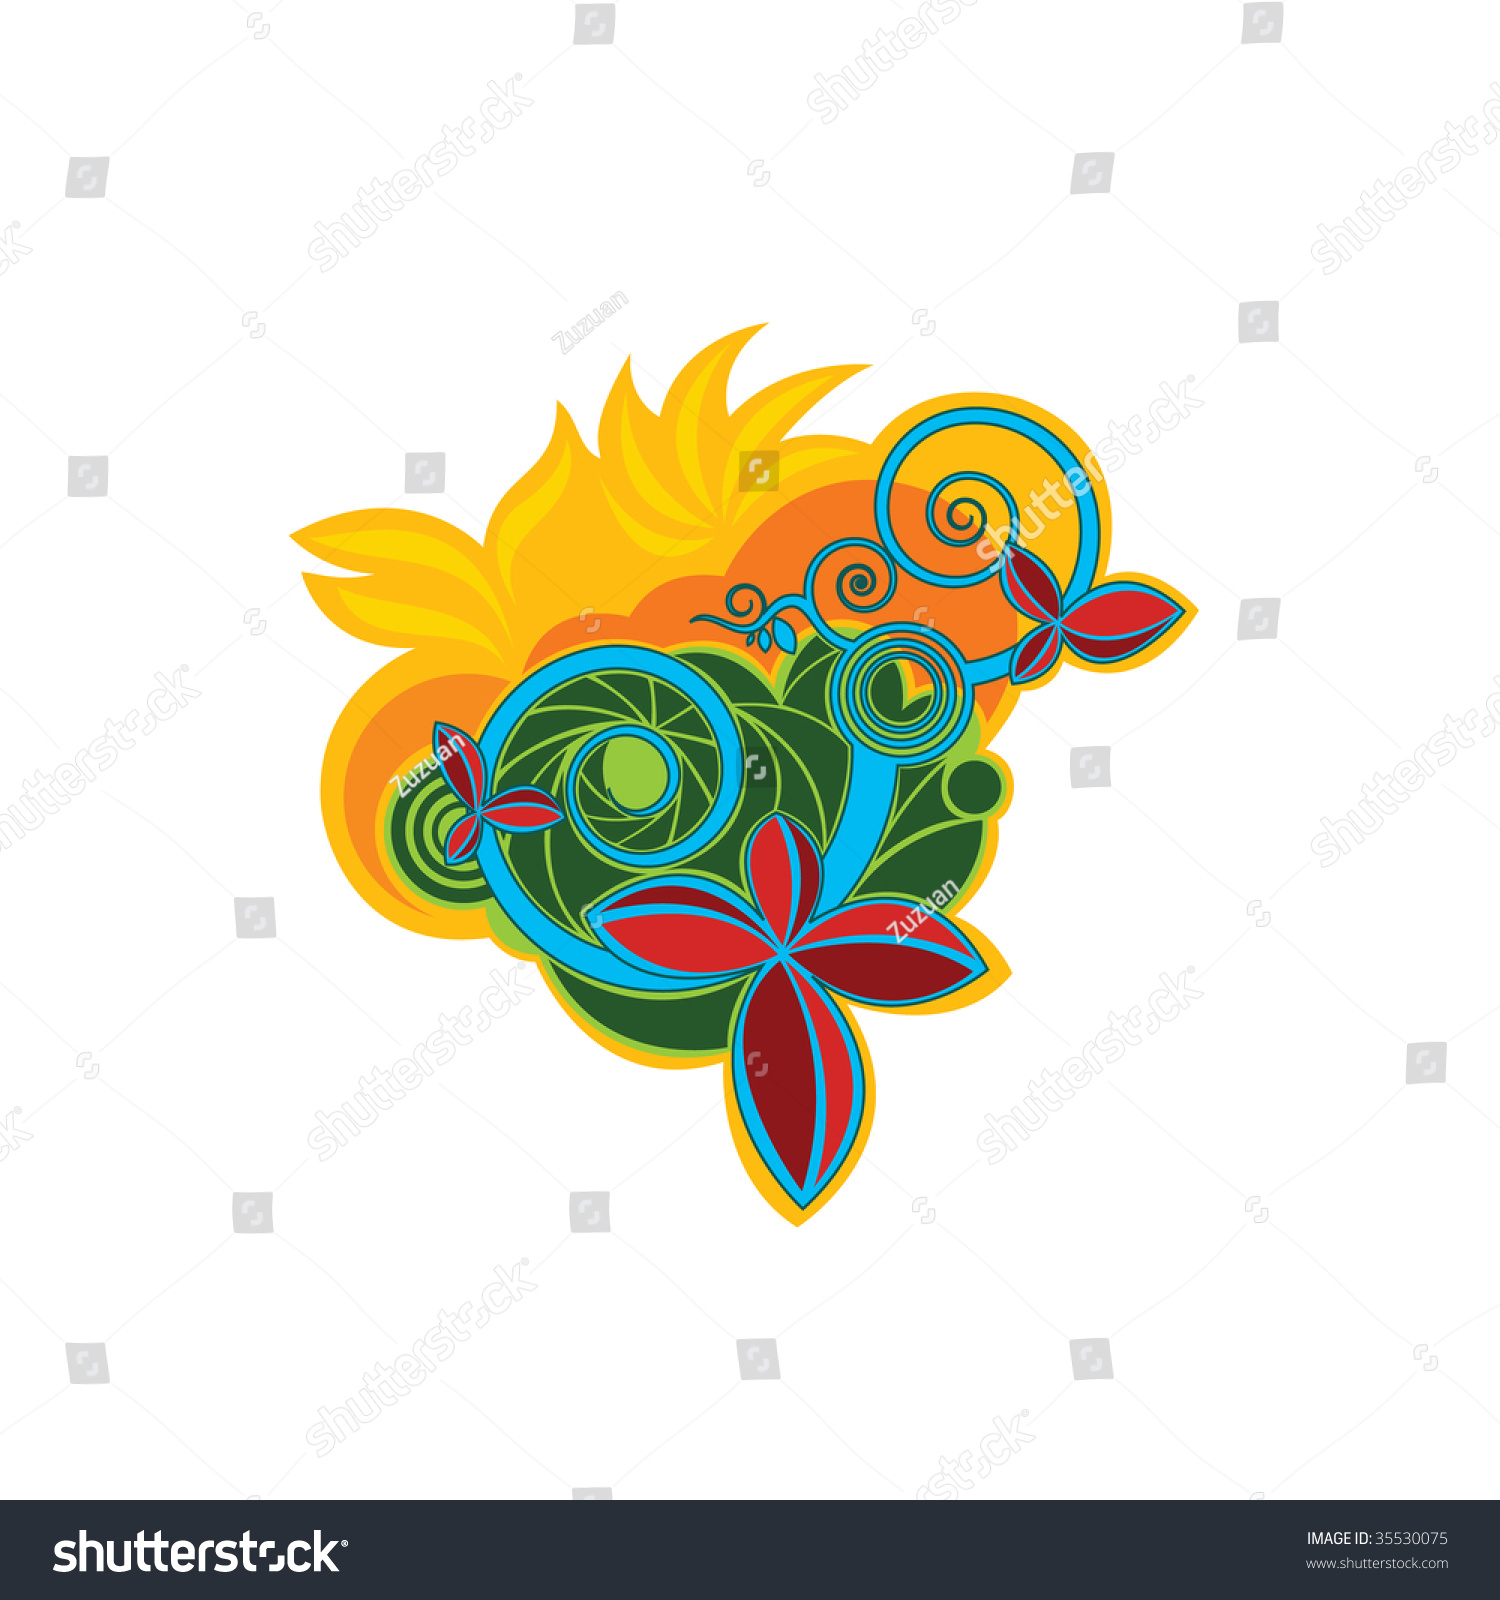 organic abstract flower design stock vector illustration